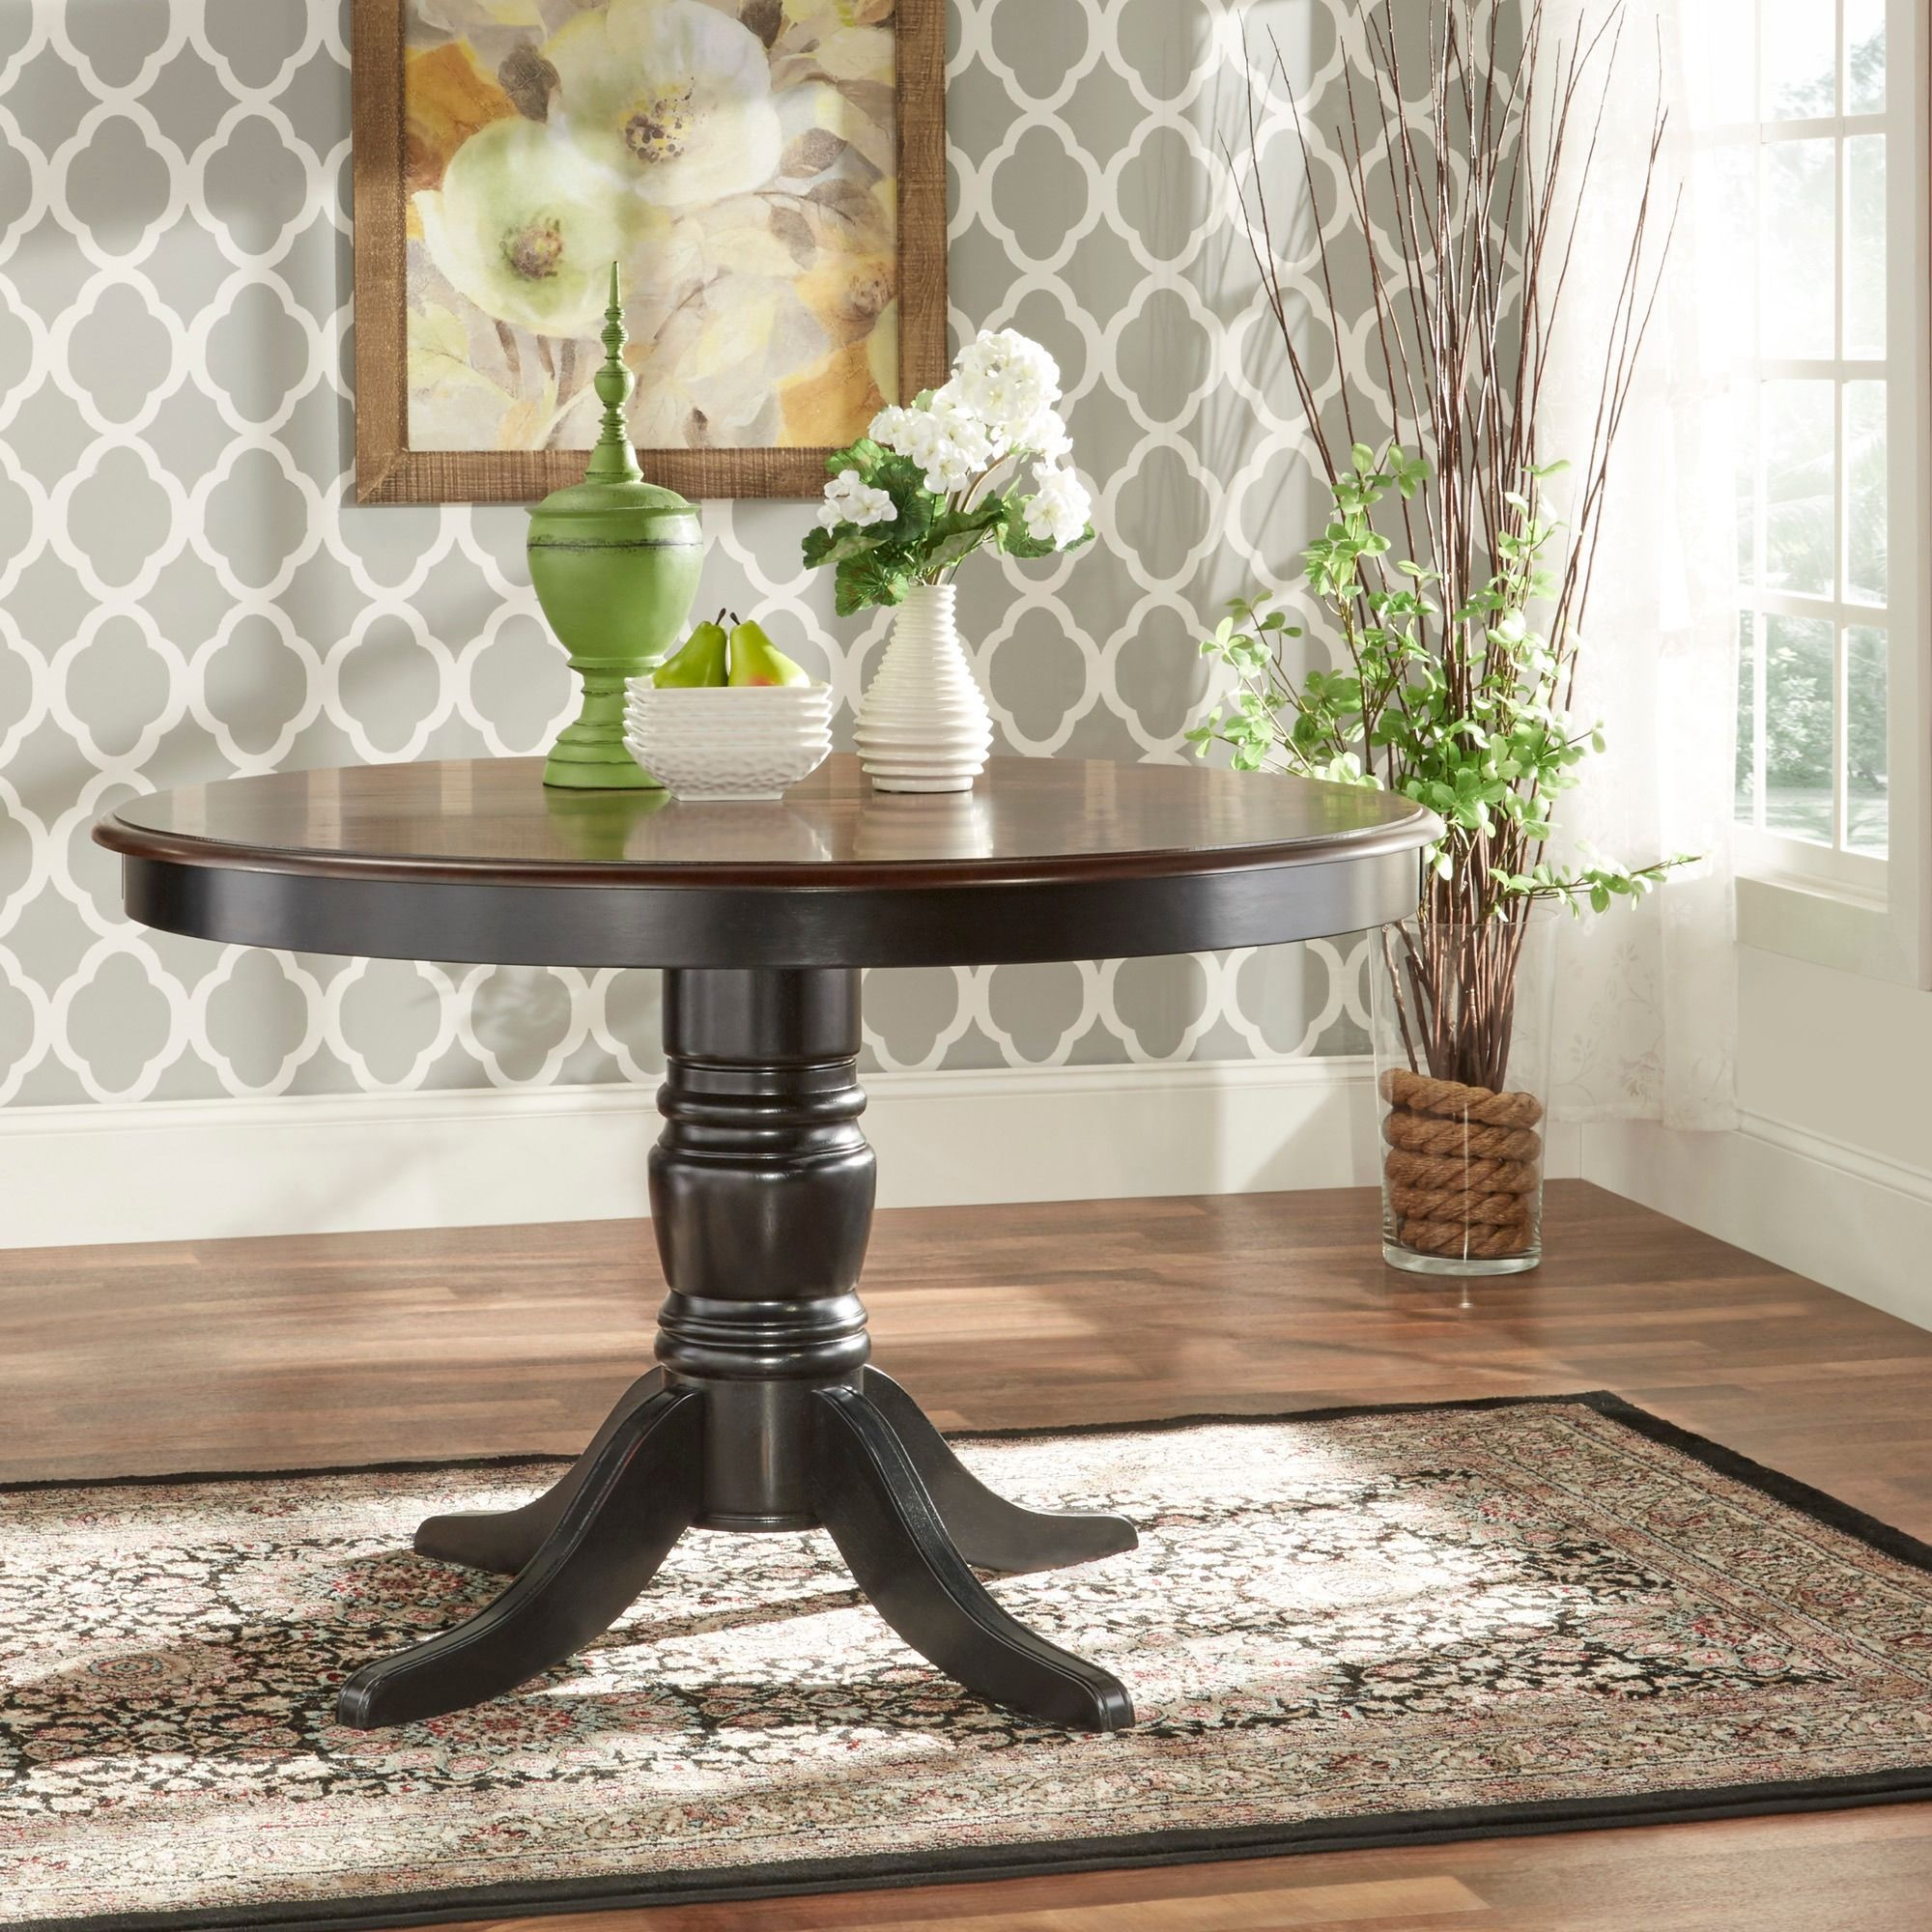 Mackenzie Country Antique Two-tone Dining Table by iNSPIRE Q Classic by  iNSPIRE Q